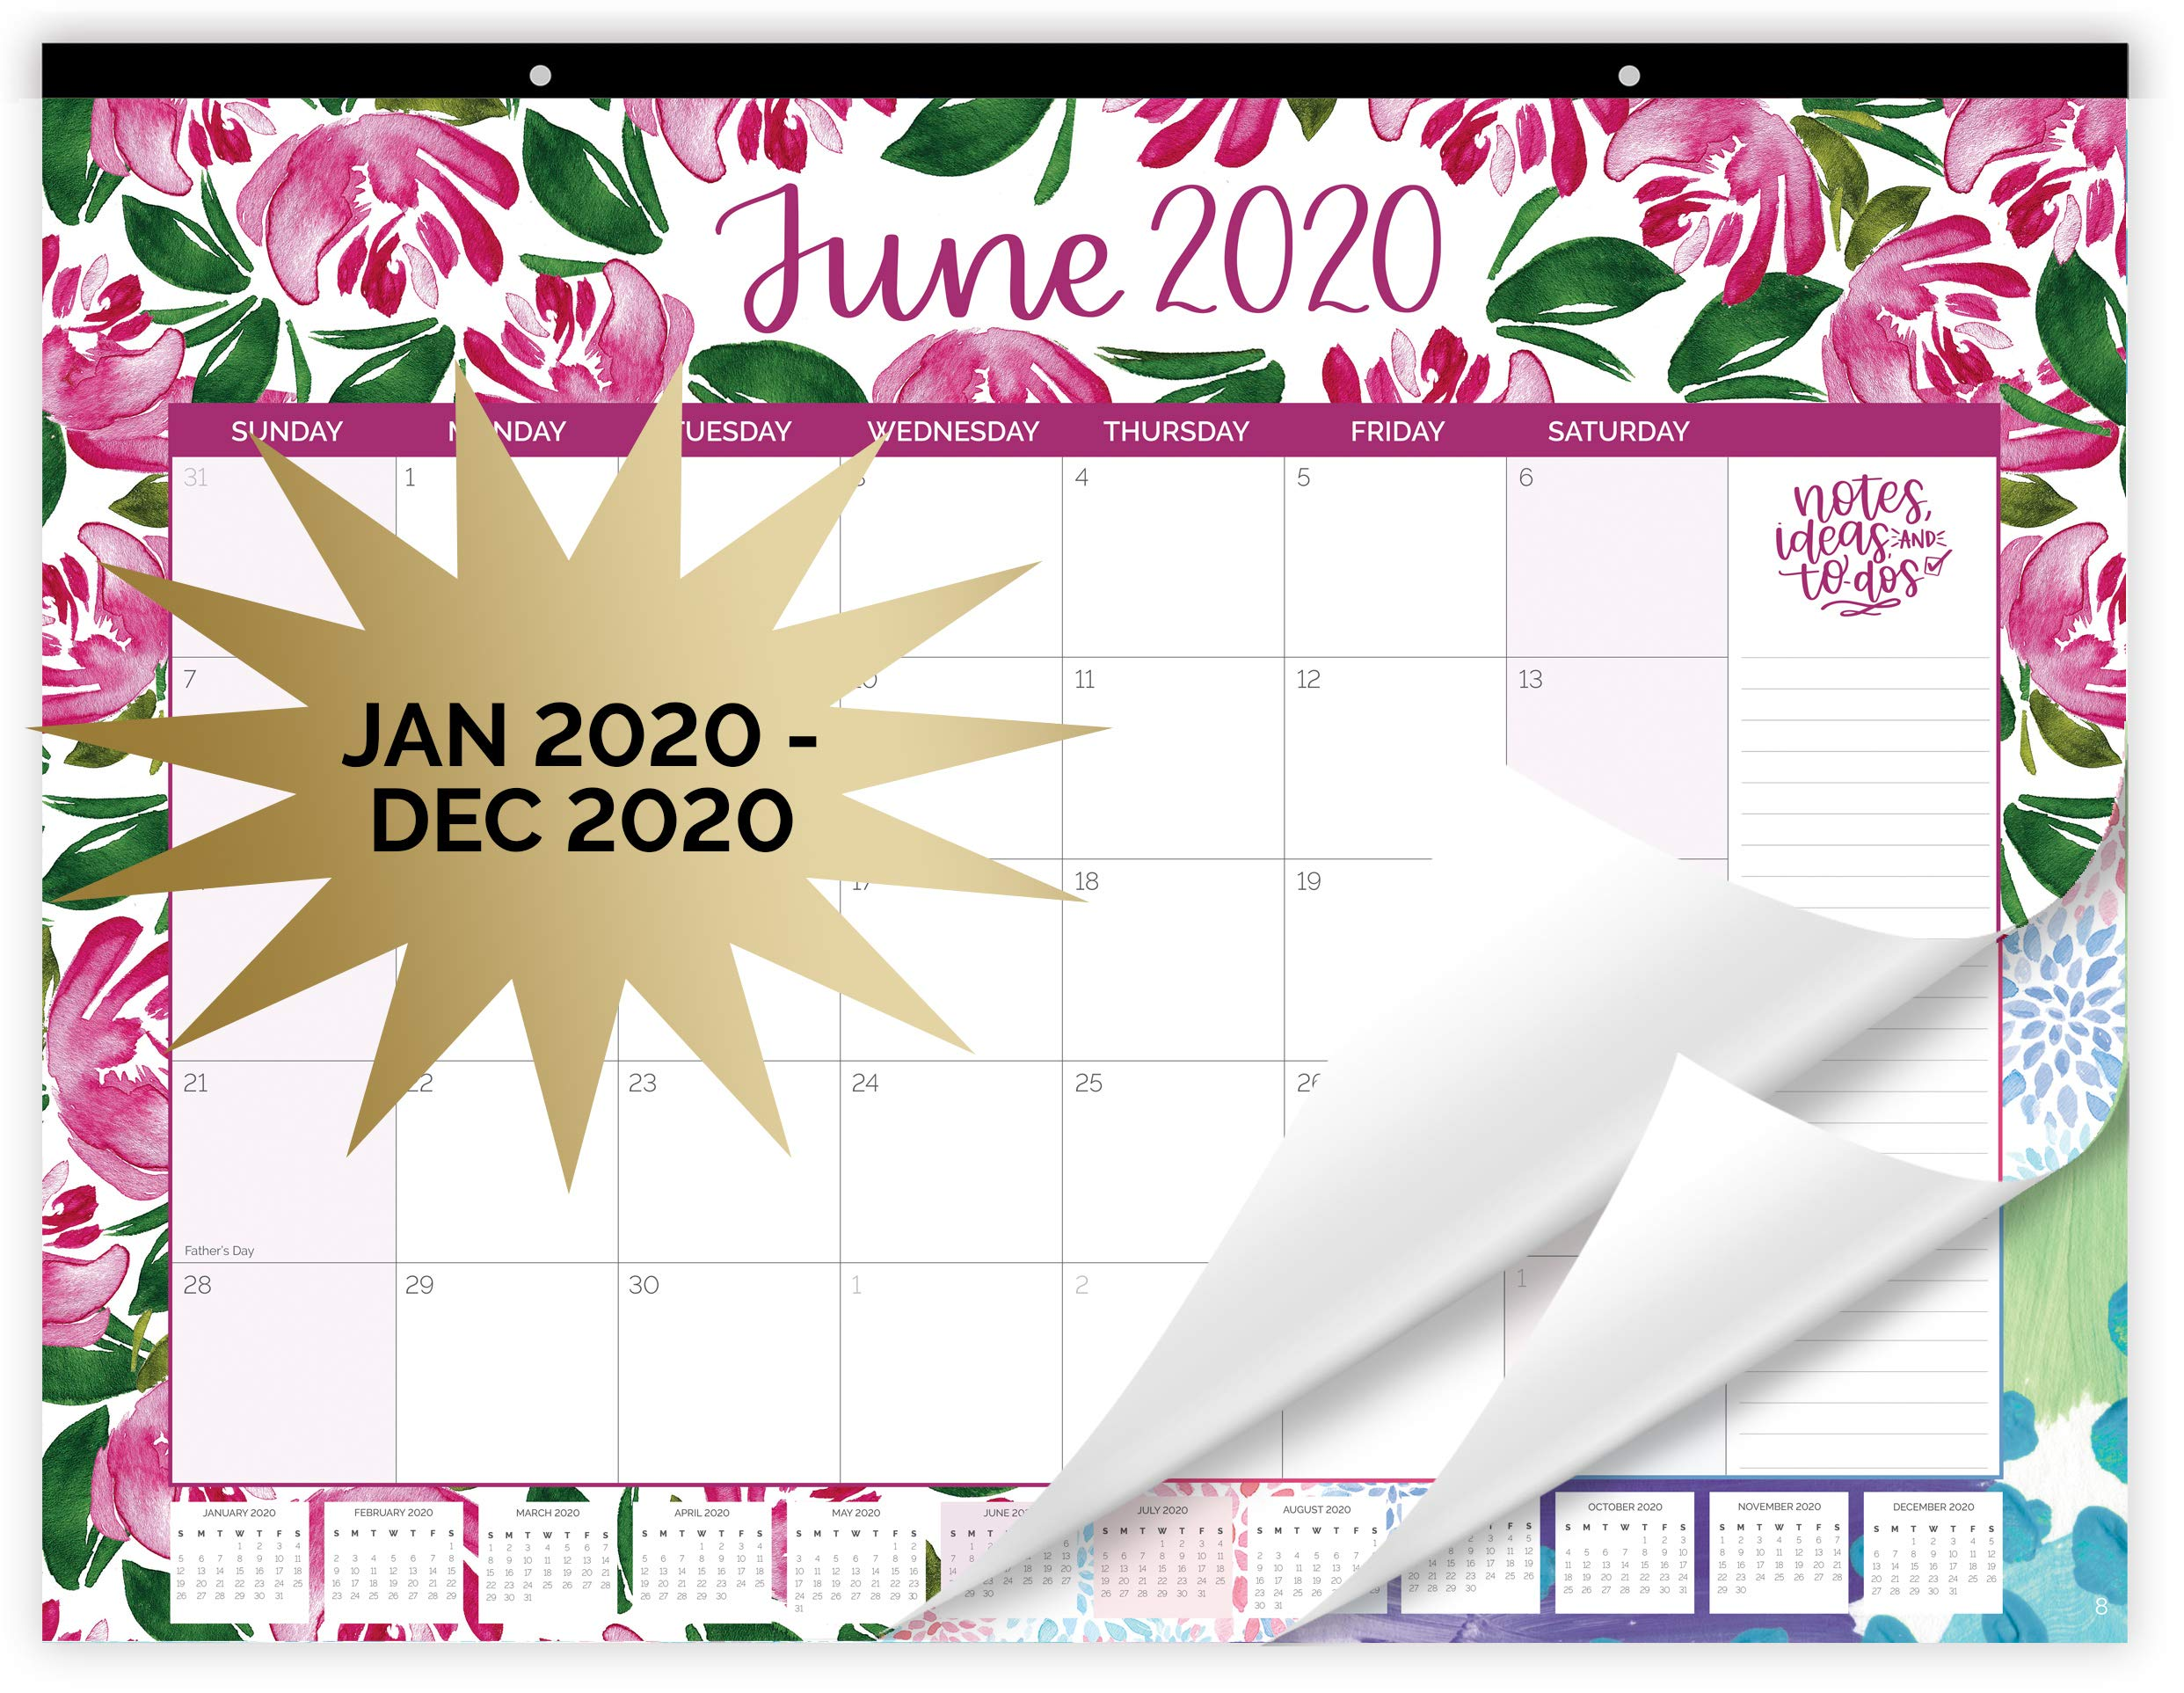 """bloom daily planners 2020 Desk/Wall Monthly Calendar Pad (January 2020 - December 2020) - Large 21"""" x 16"""" Hanging or Desktop Blotter - Watercolor"""